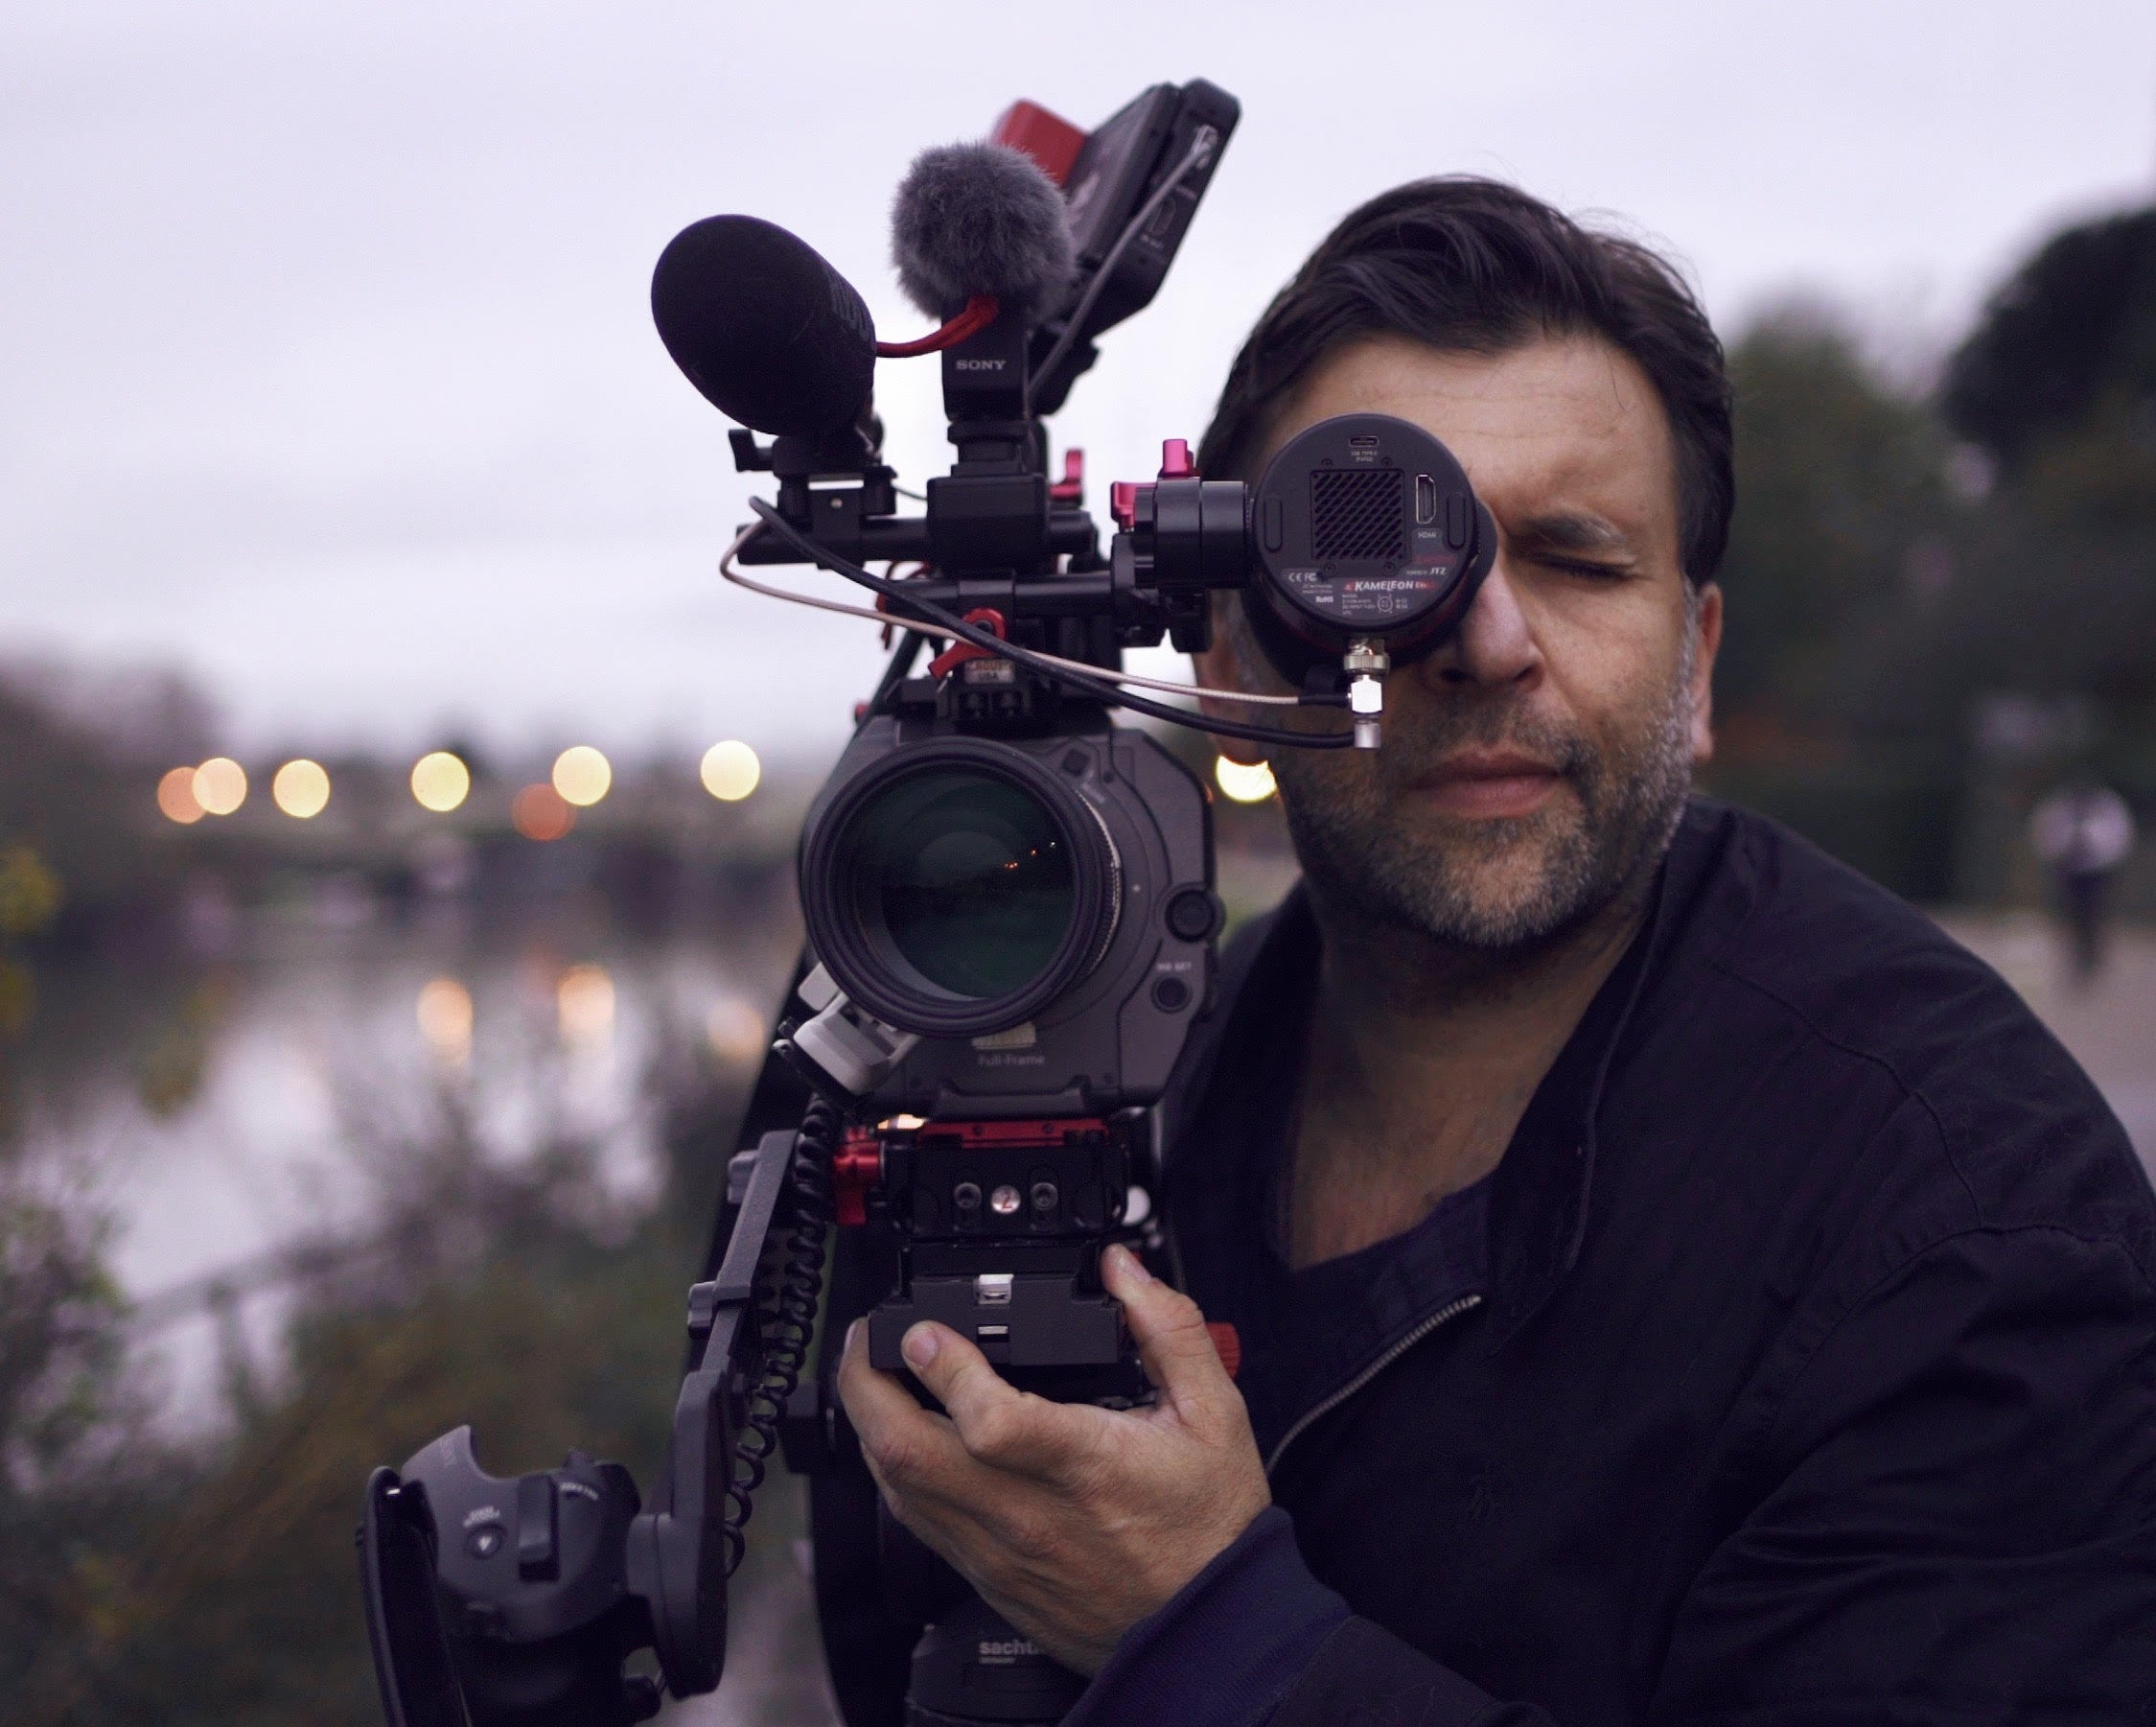 philip bloom with the sony fx9 and zacuto